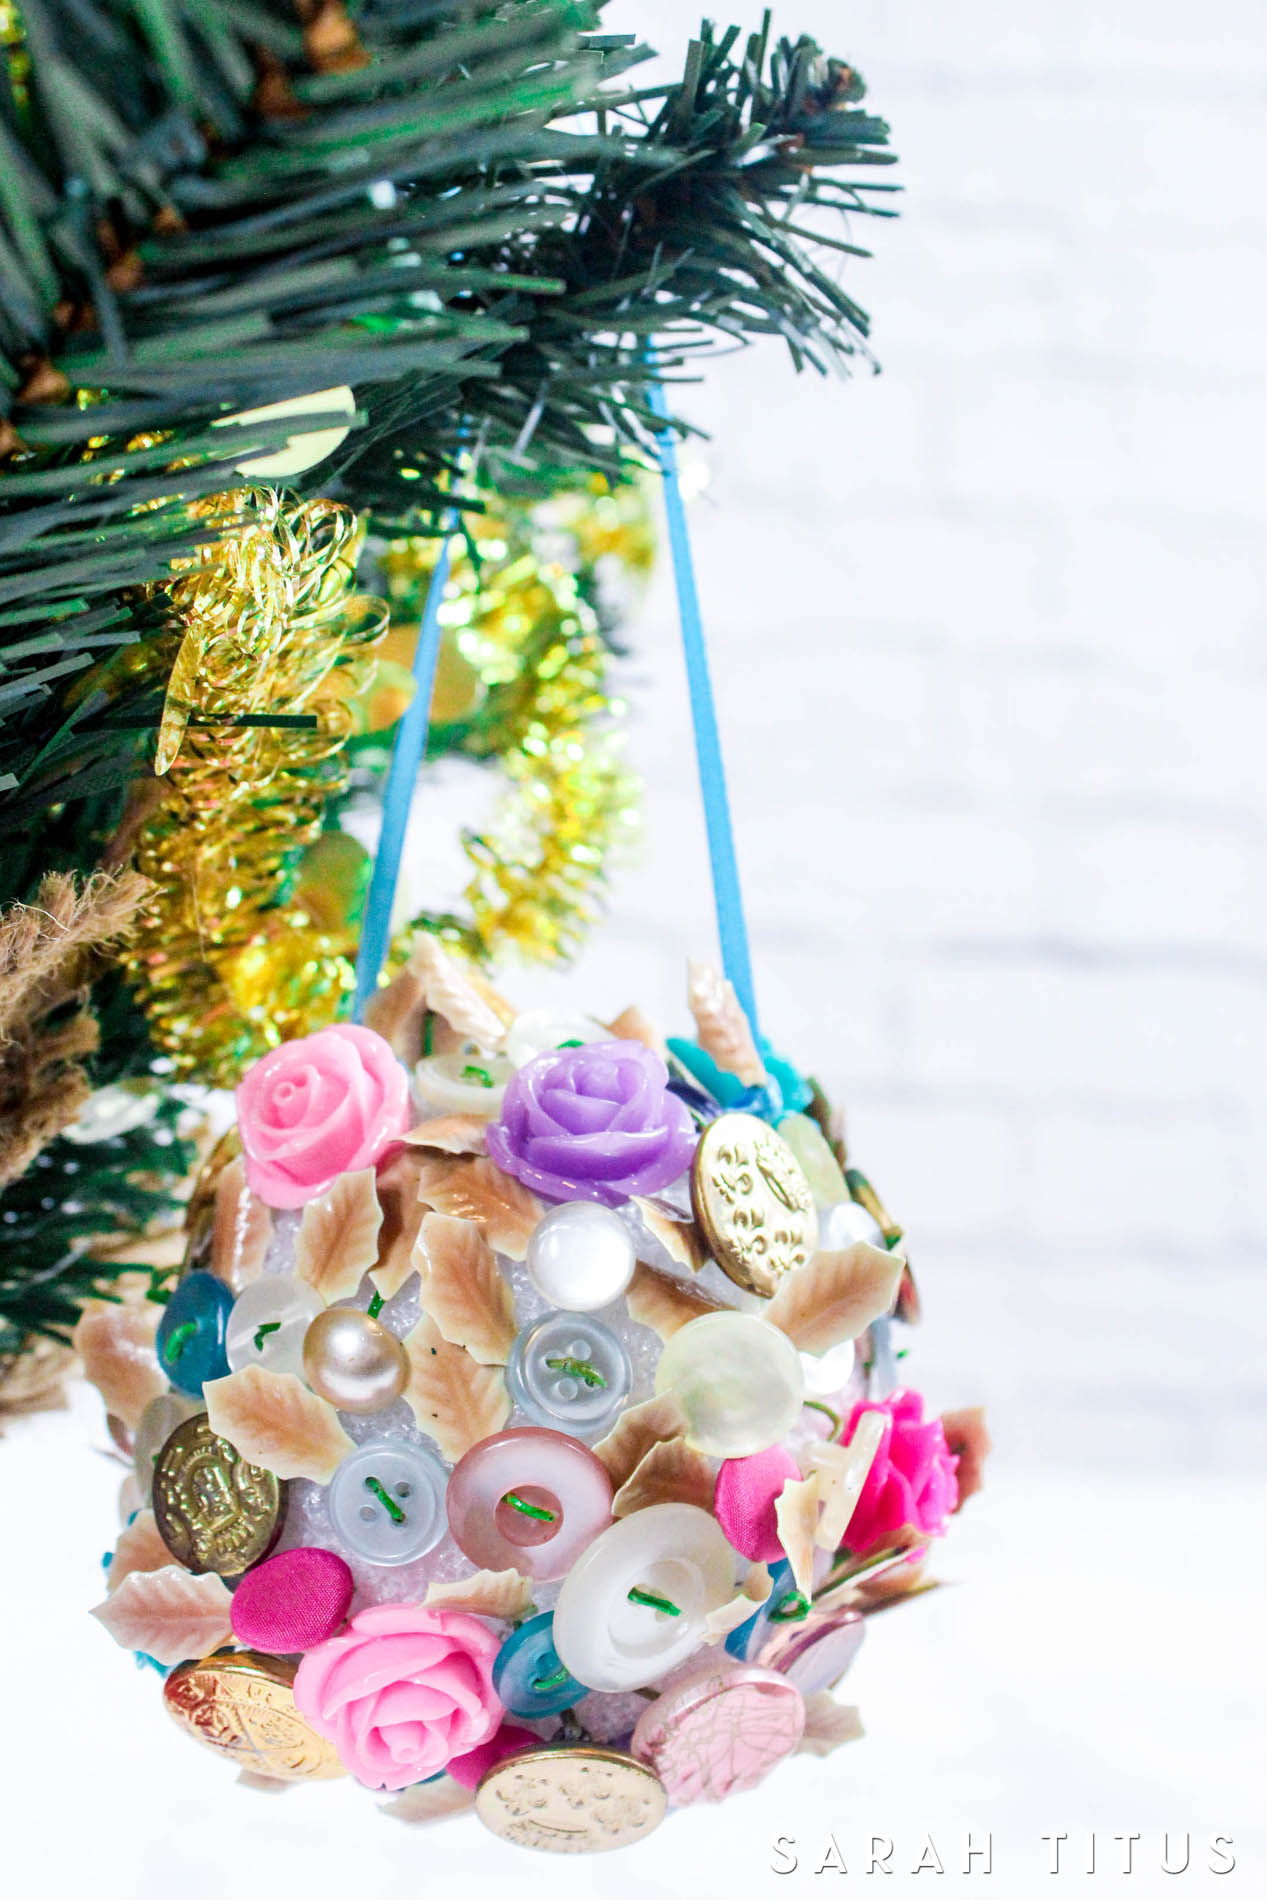 Make a button Christmas tree ornament for the holidays!